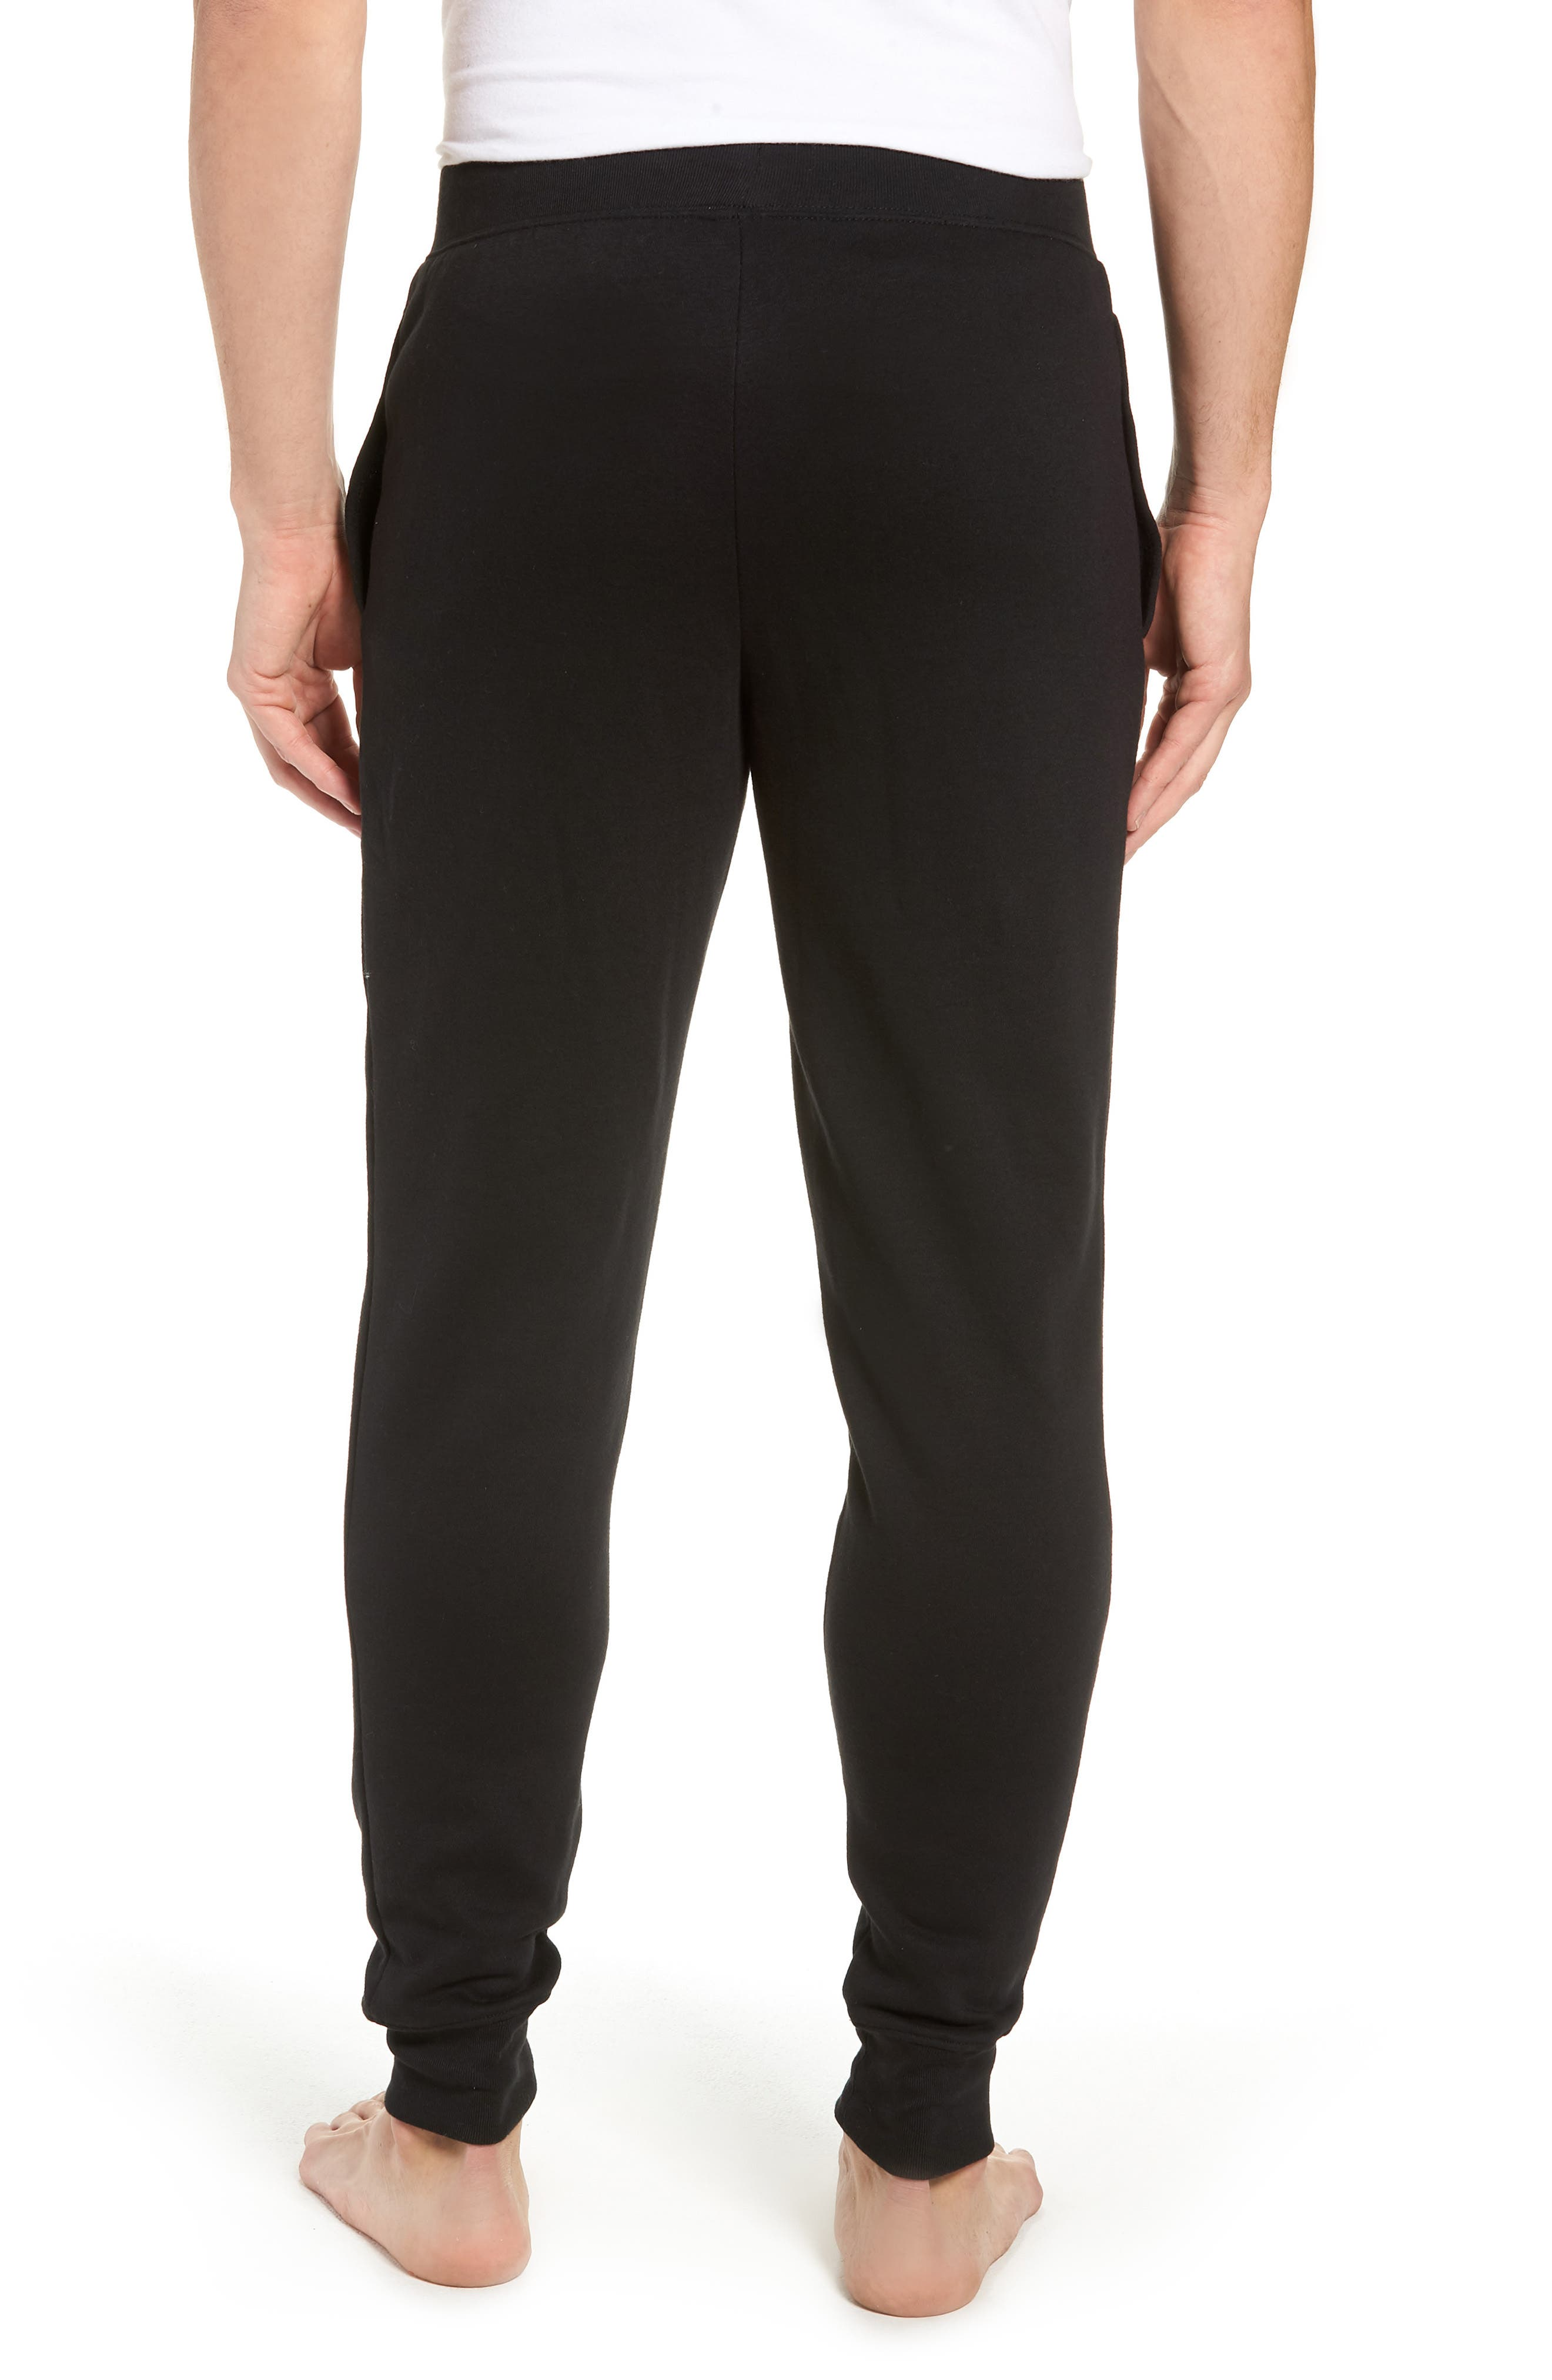 POLO RALPH LAUREN, Brushed Jersey Cotton Blend Jogger Pants, Alternate thumbnail 2, color, POLO BLACK